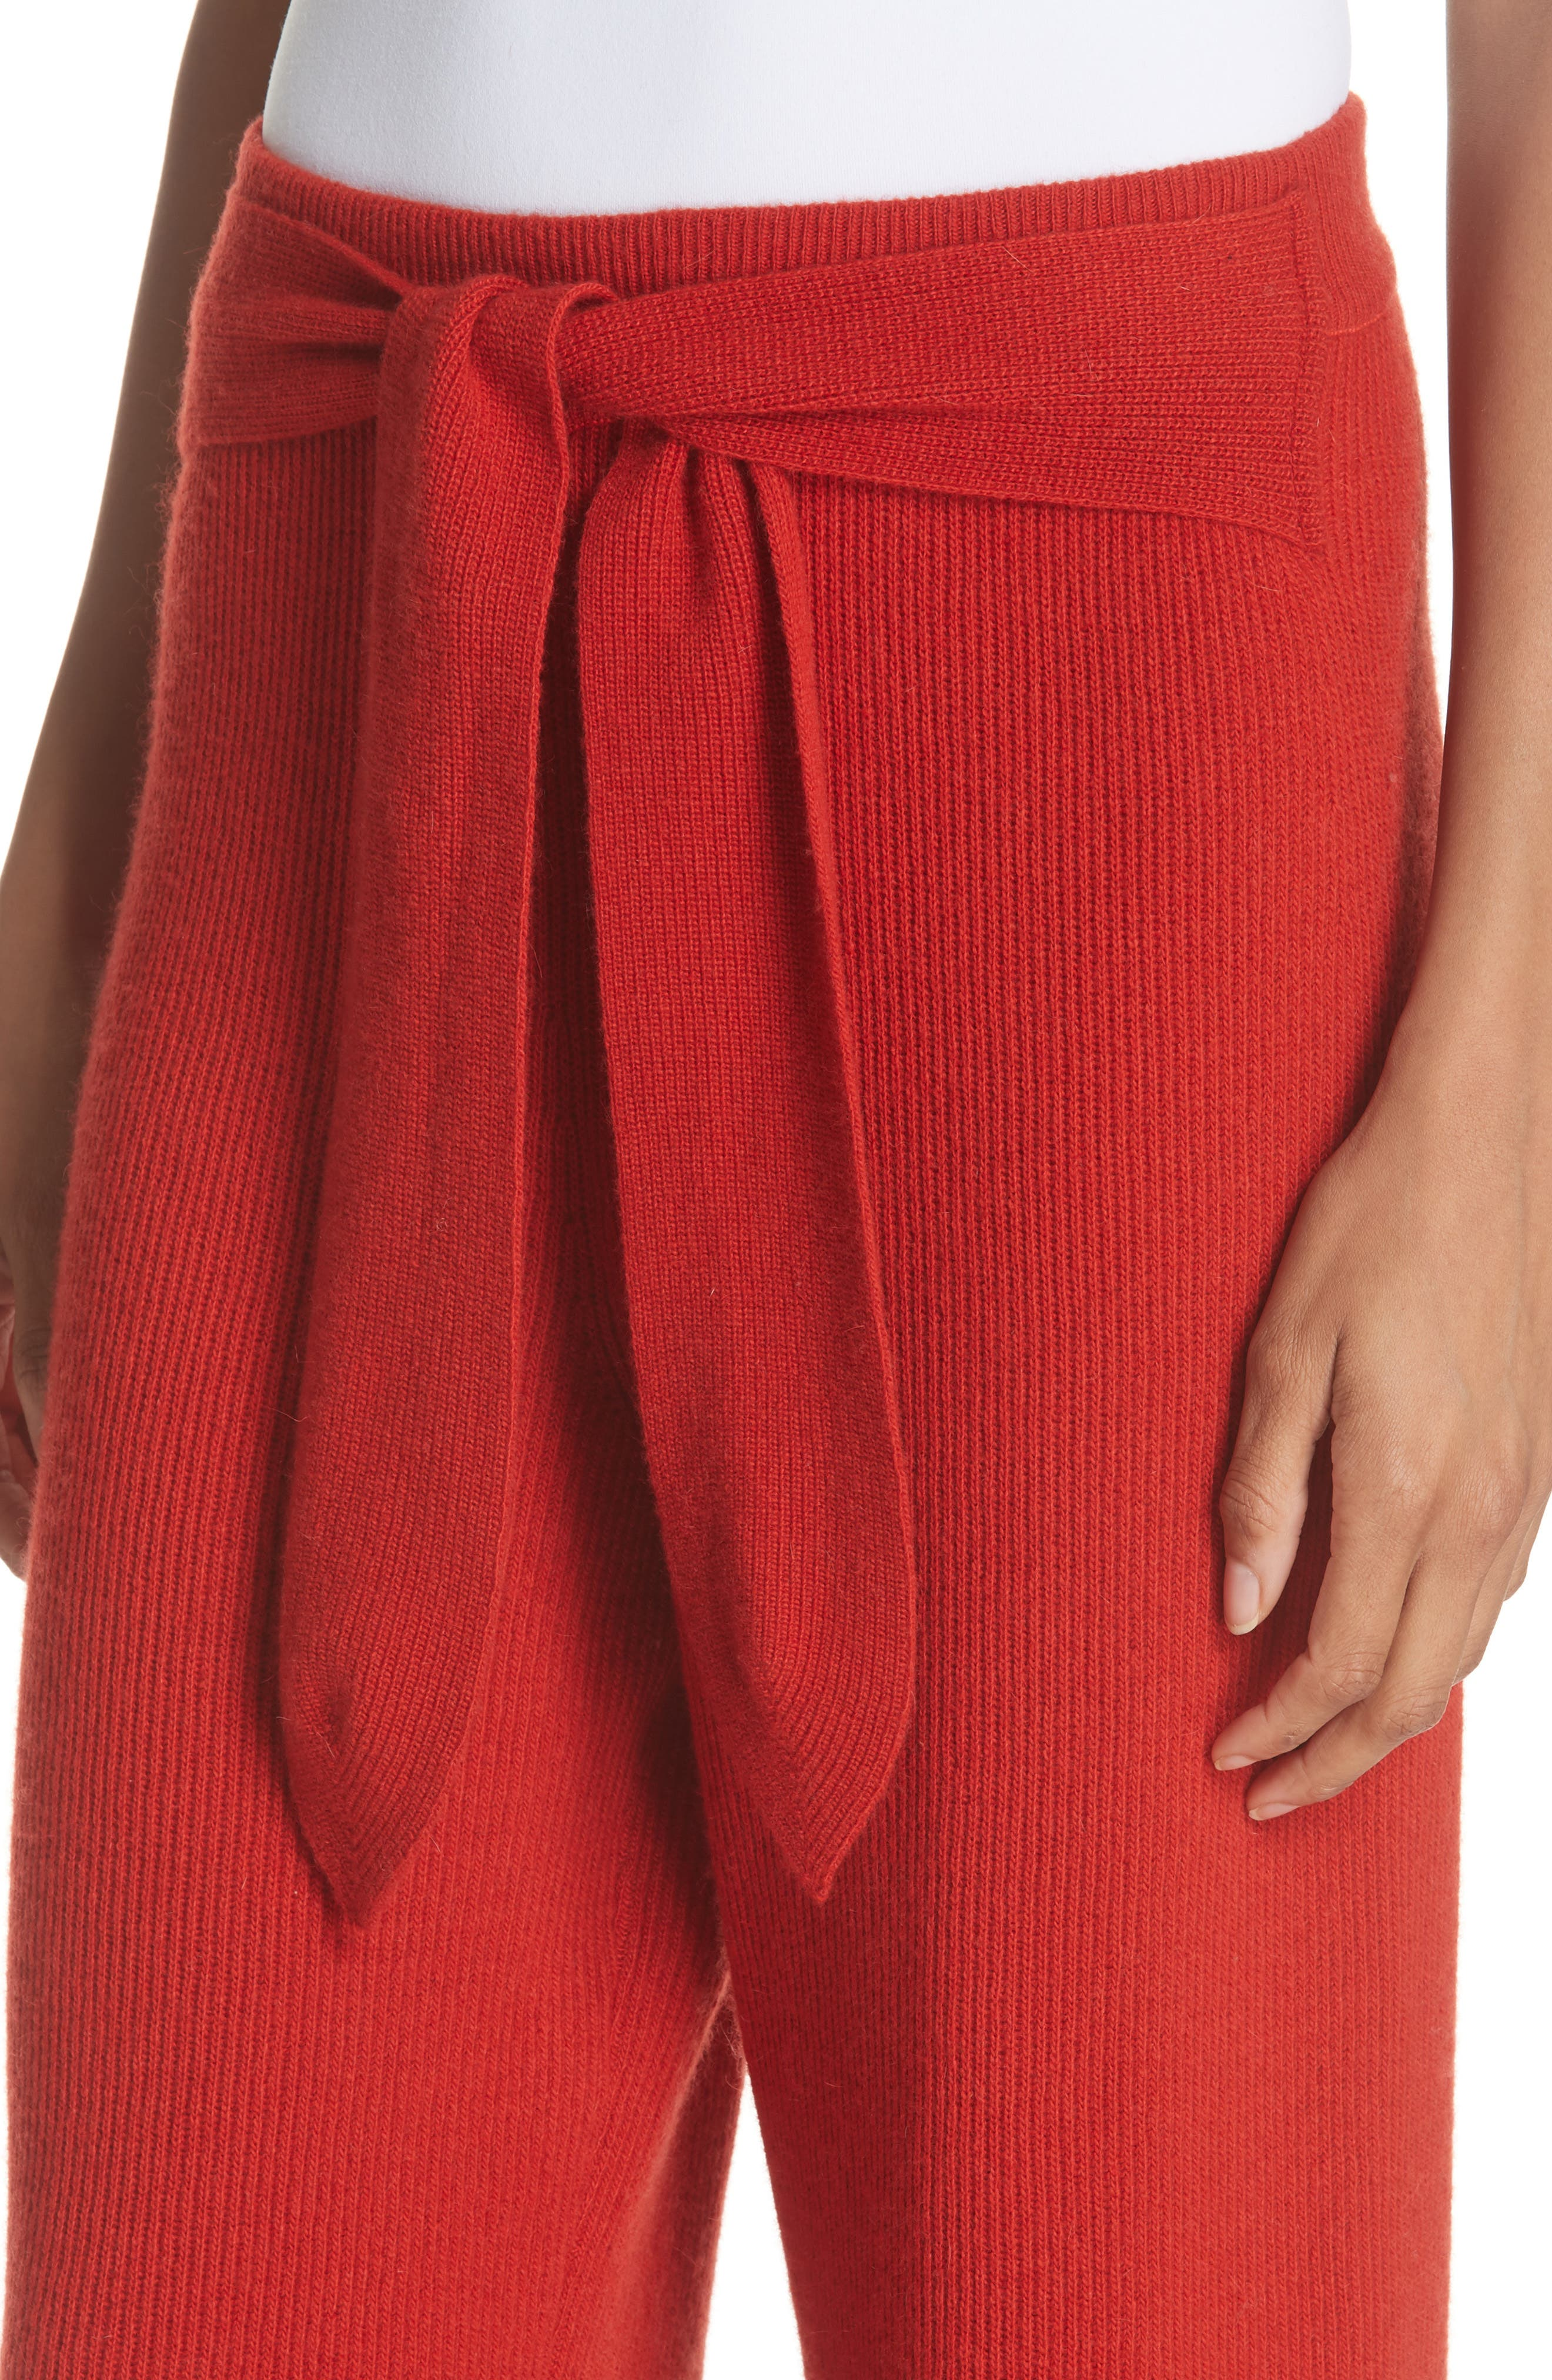 Tigre Merino Wool & Cashmere Blend Pants,                             Alternate thumbnail 4, color,                             RED